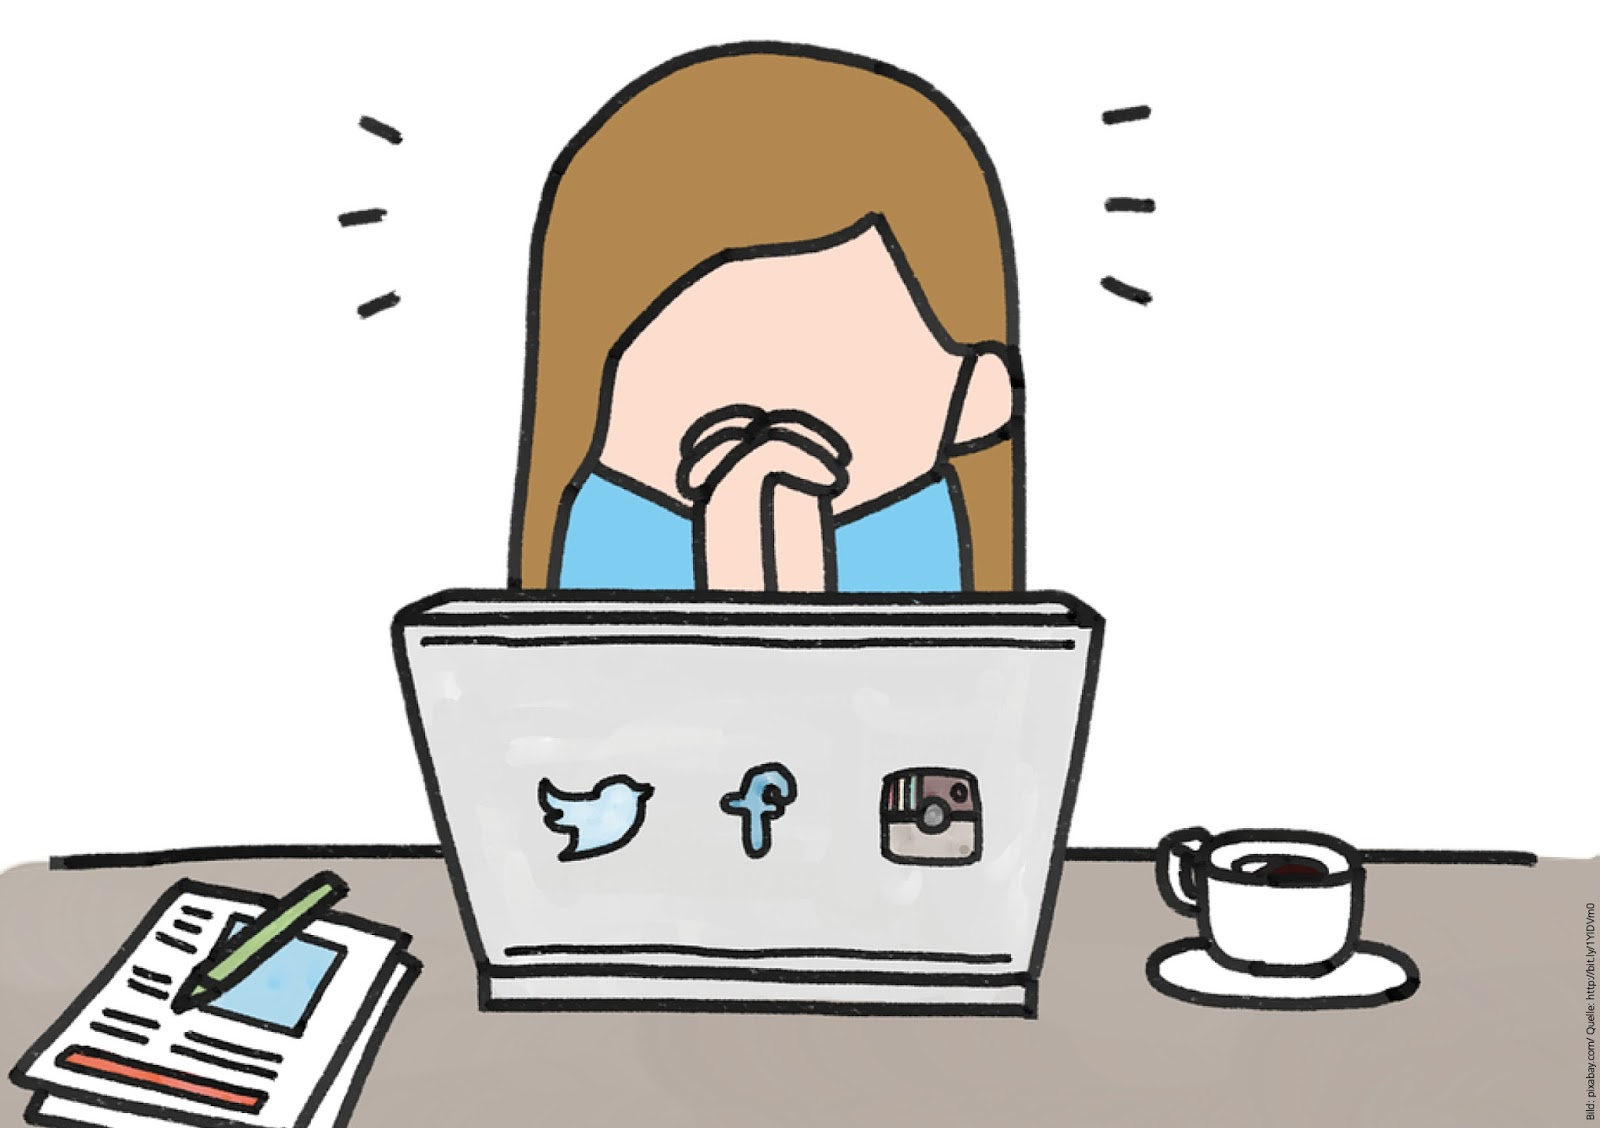 girl sitting next to a laptop posting on social media (twitter, facebook, instagram, blog)